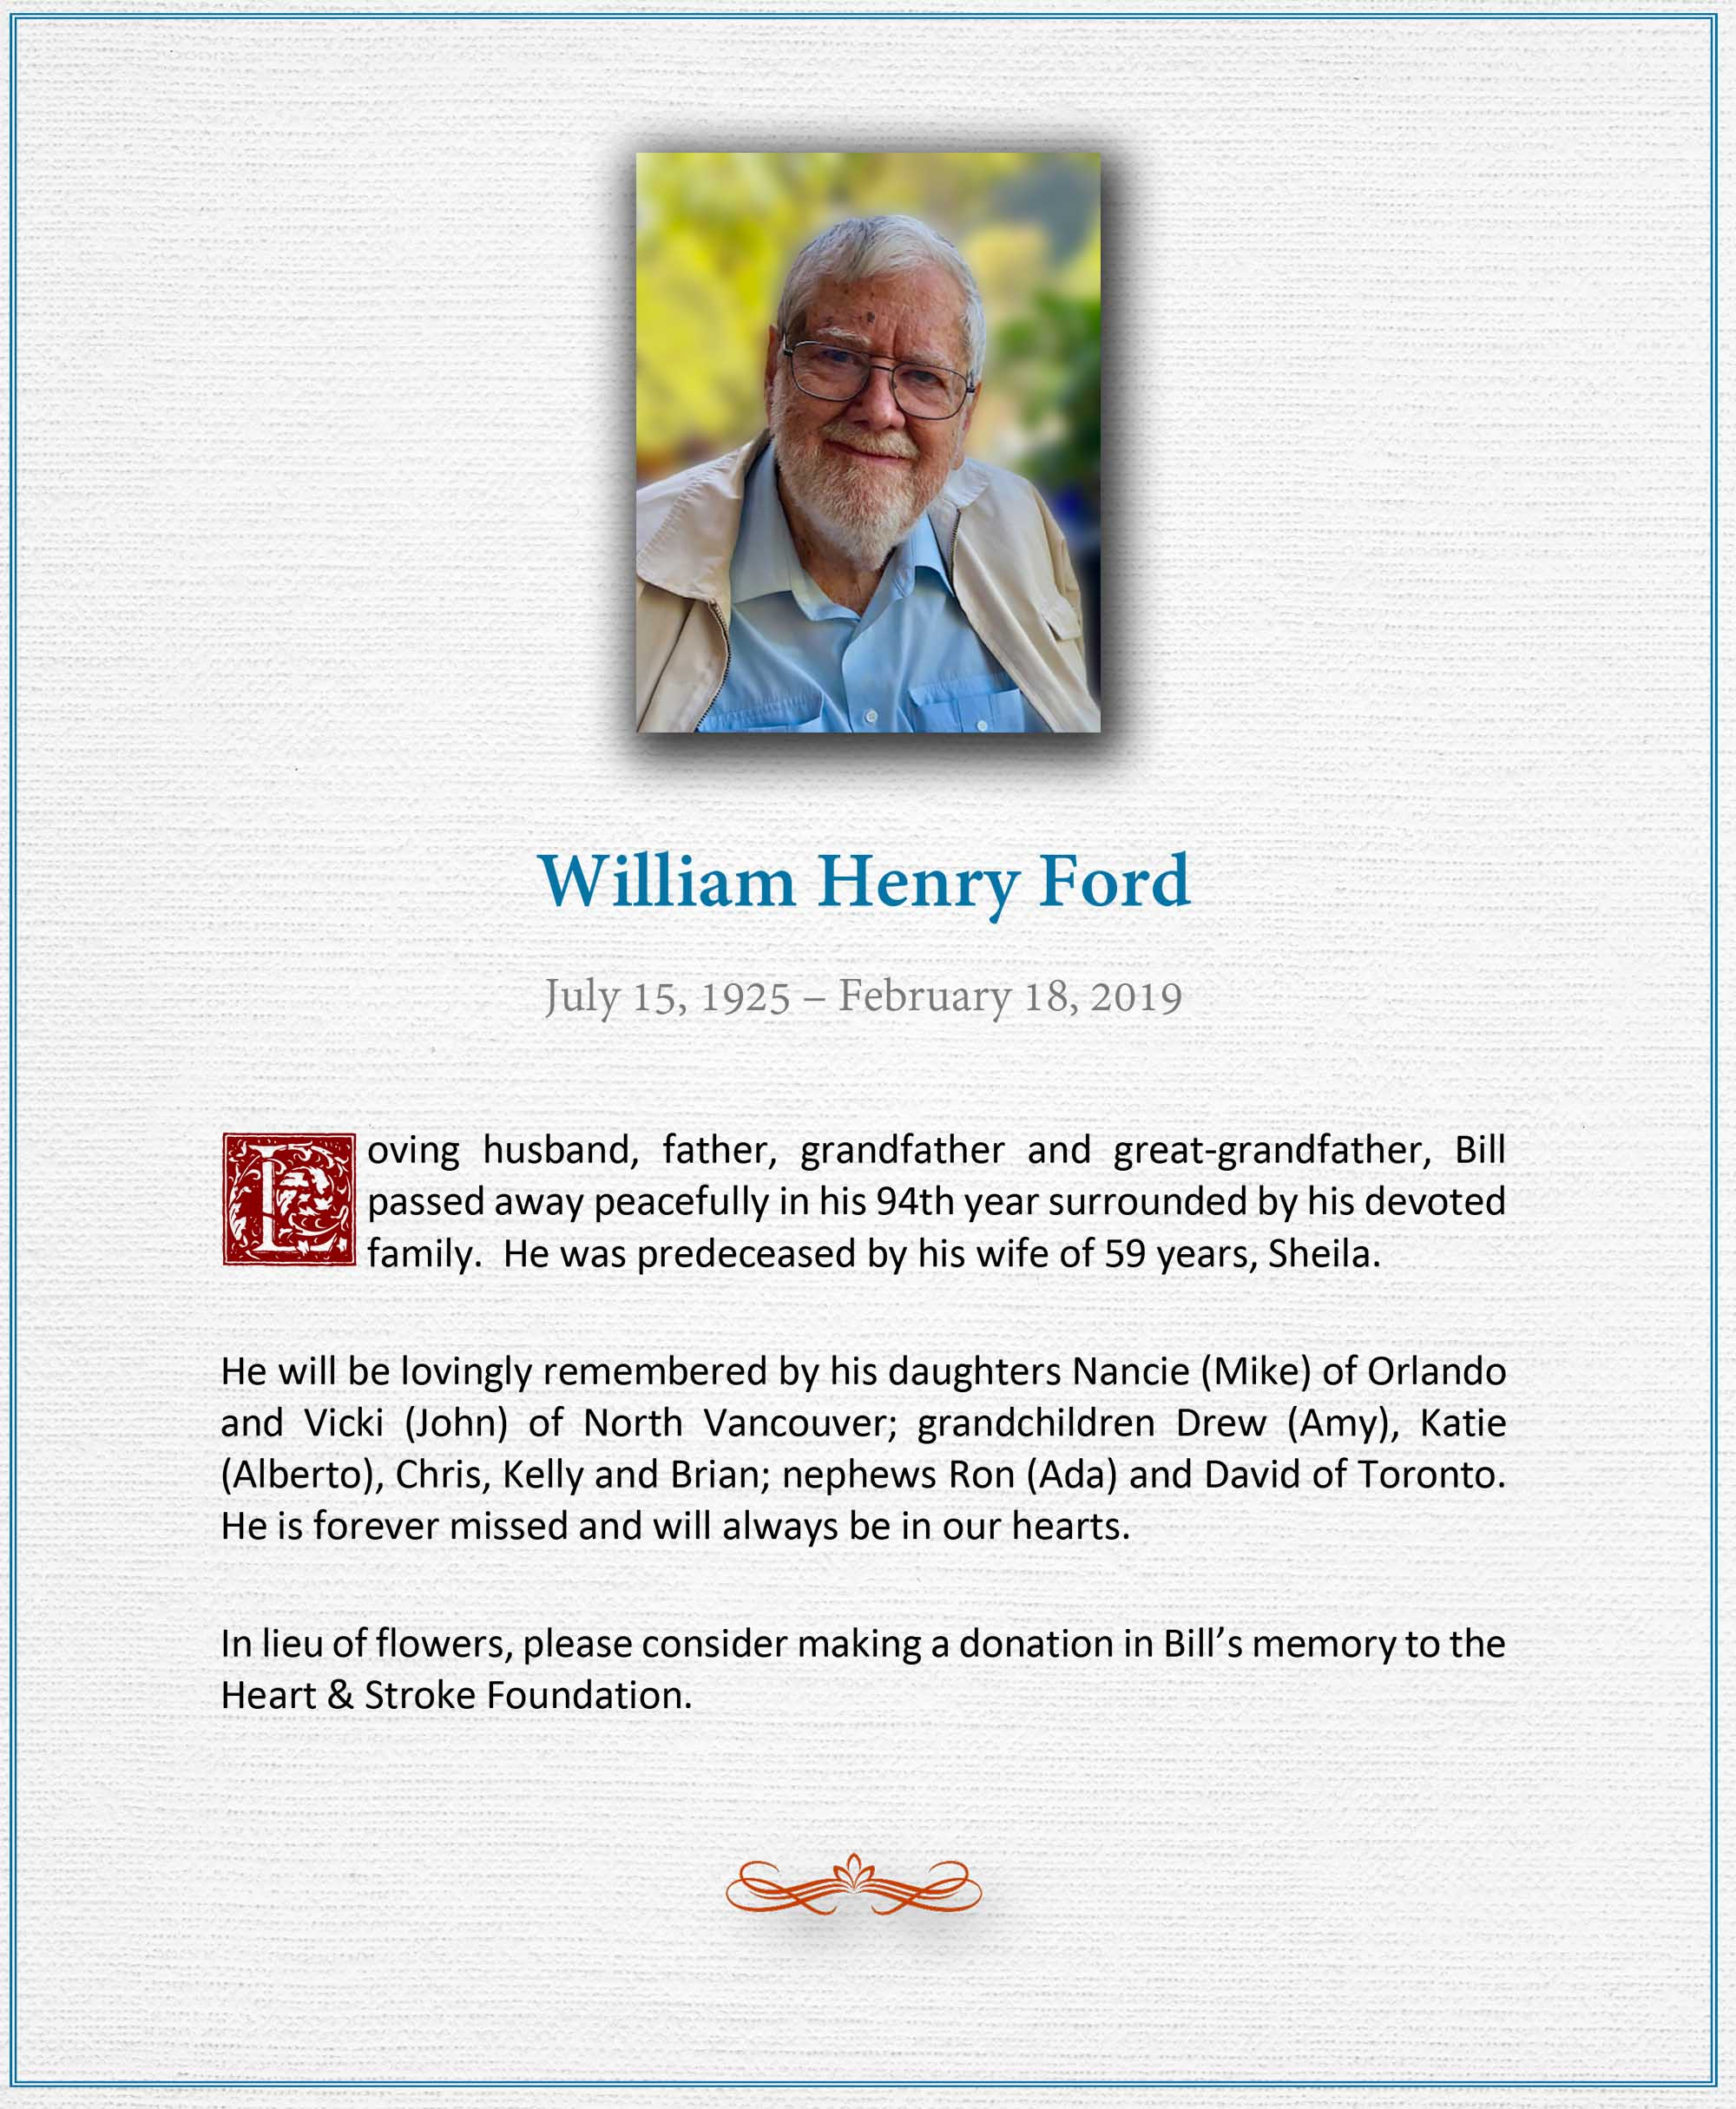 Obituary for William Henry Ford of North Vancouver BC